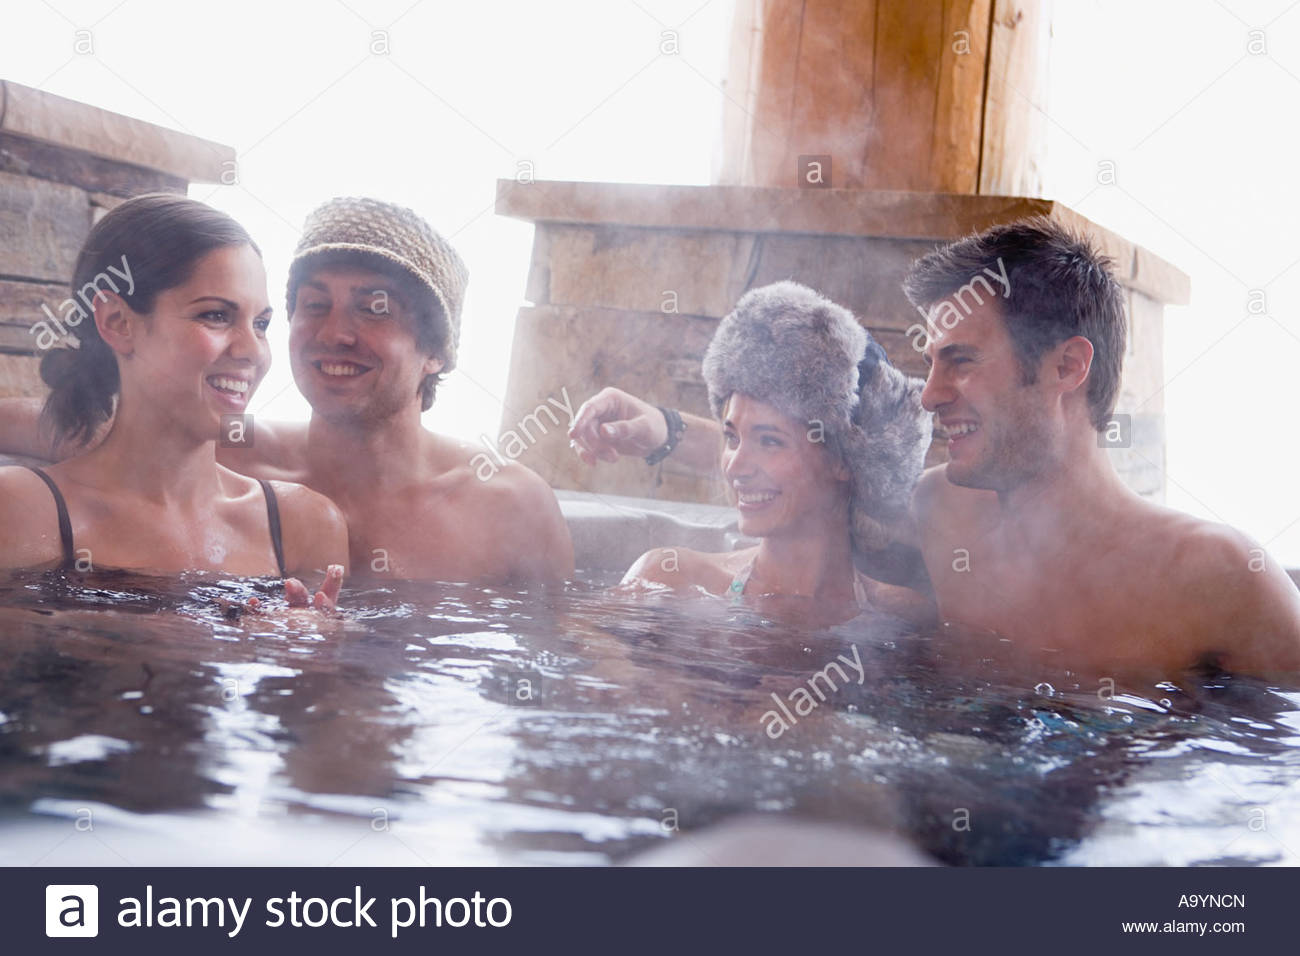 Young couples in a hot tub - Stock Image